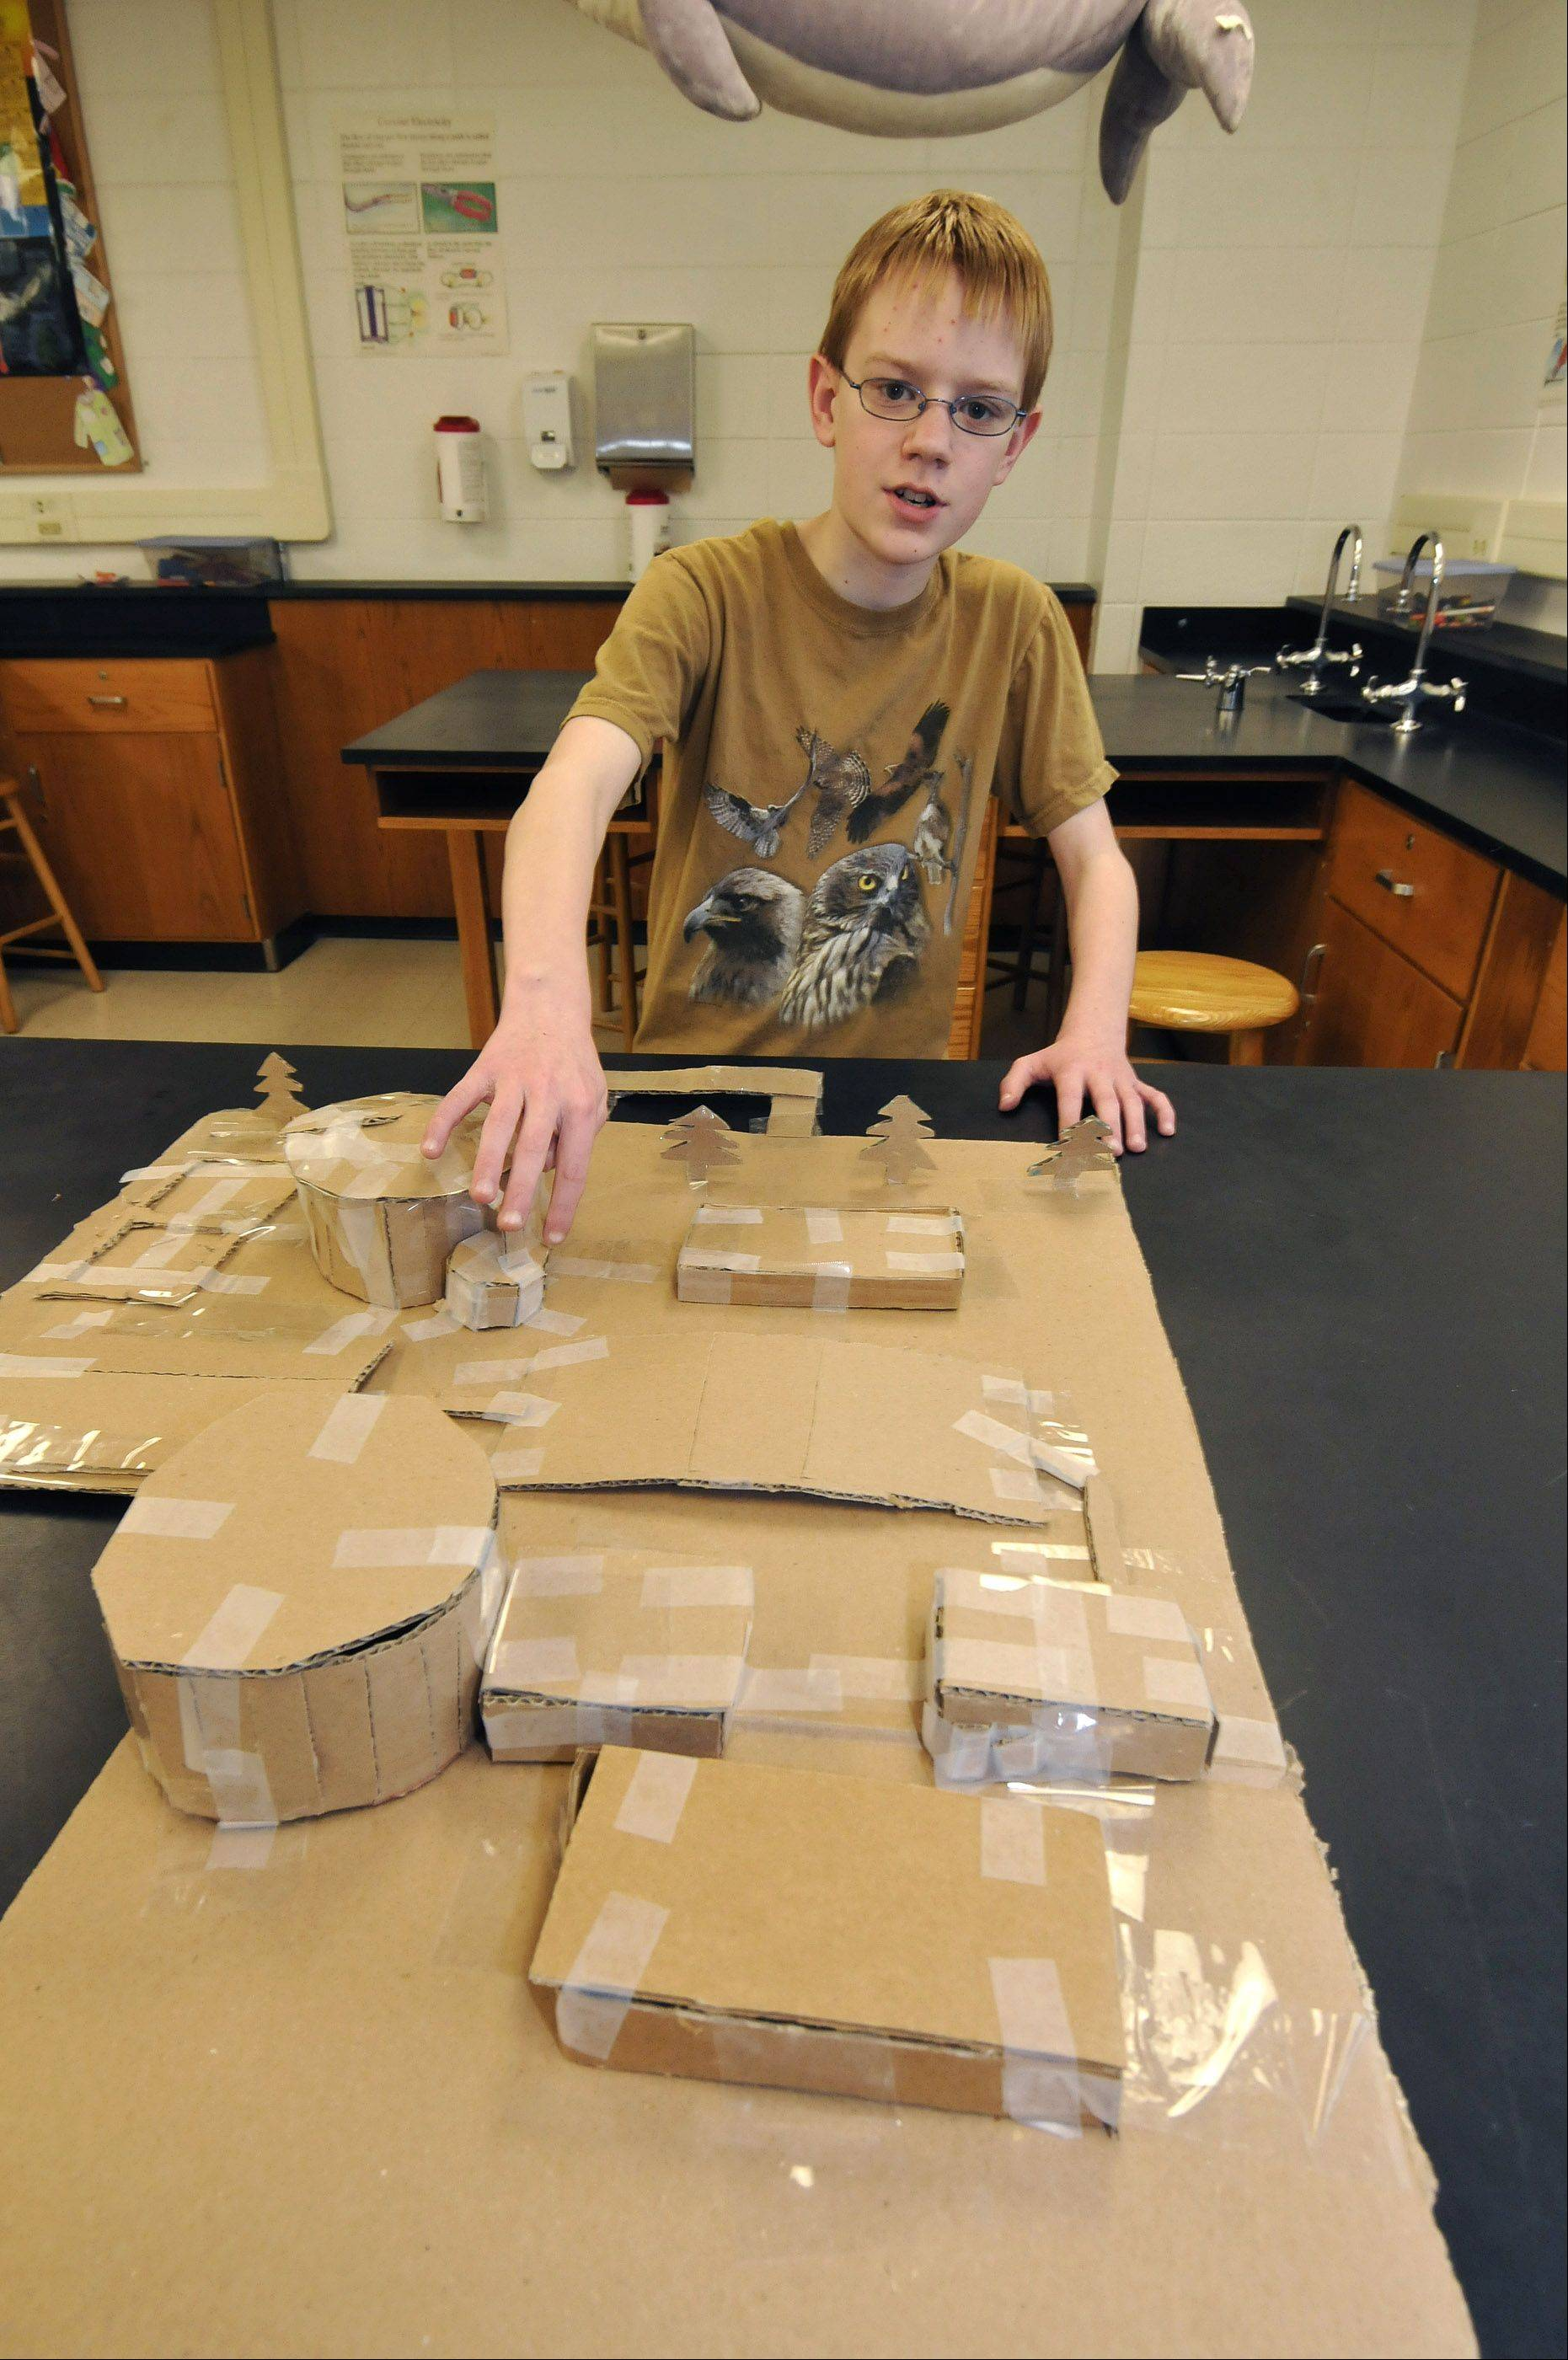 Sixth-grader Wesley Jedlicka explains the operation of a water purification plant with the aid of a cardboard model he built.